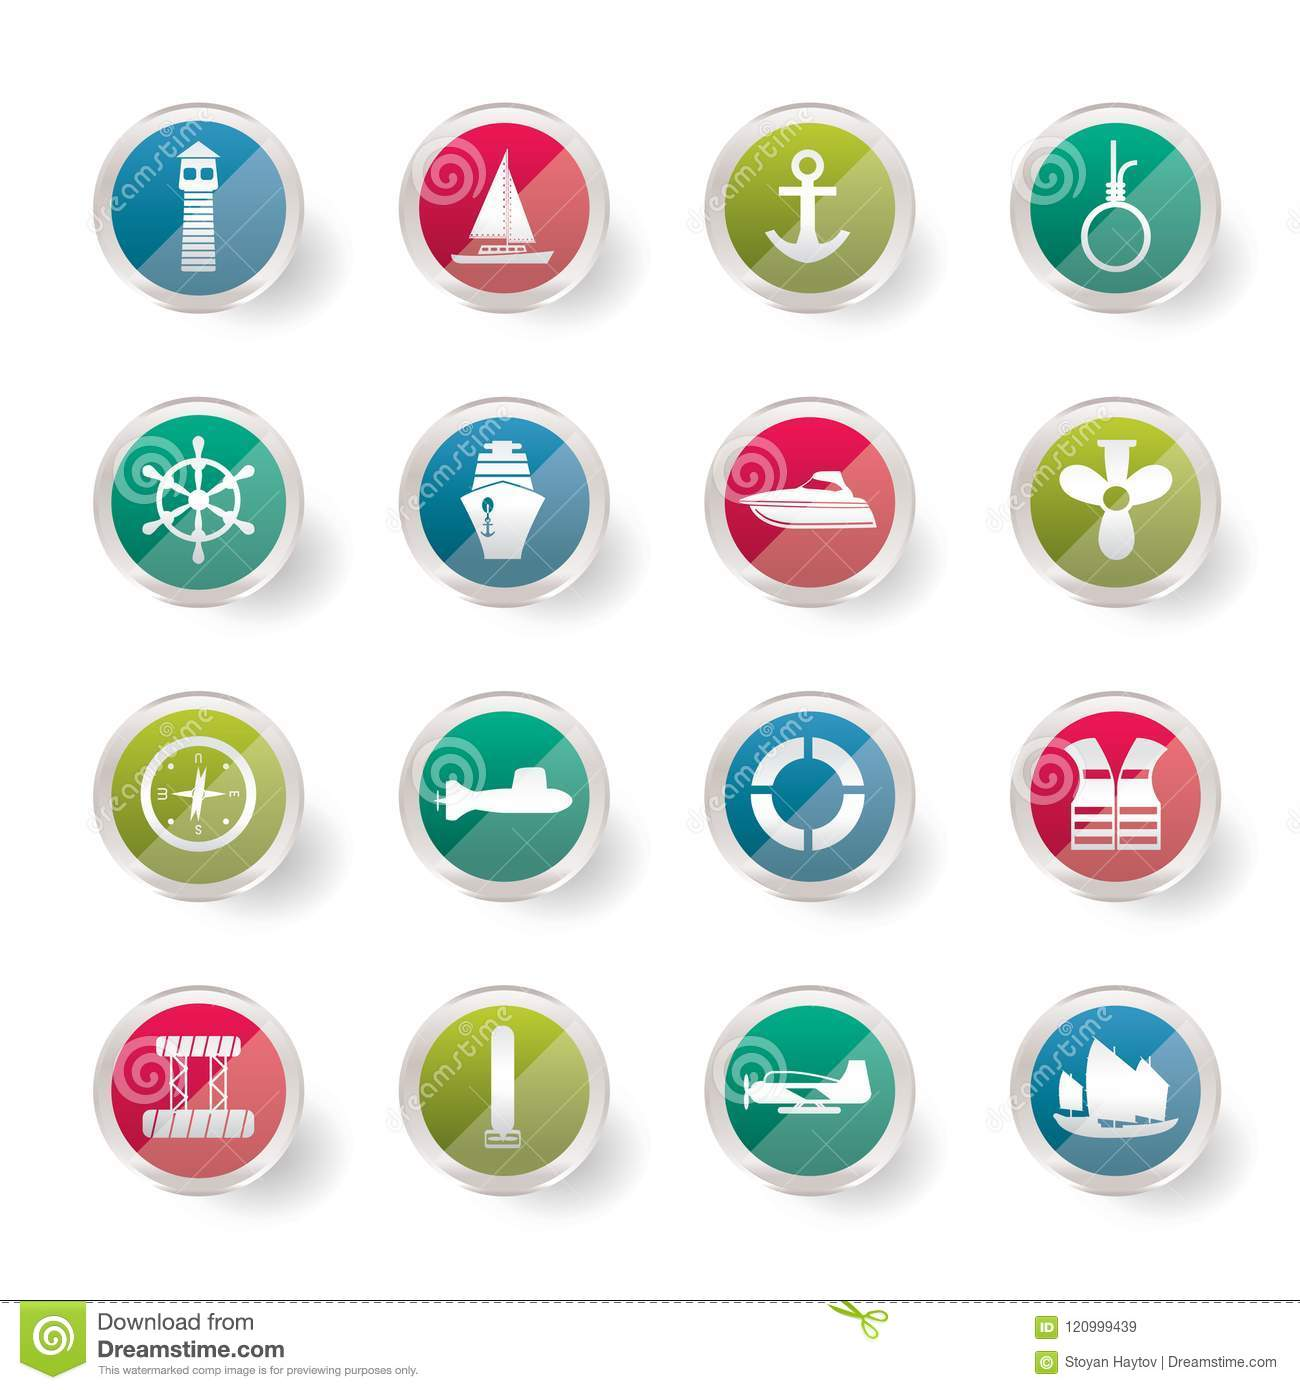 Simple Marine, Sailing and Sea Icons over colored background